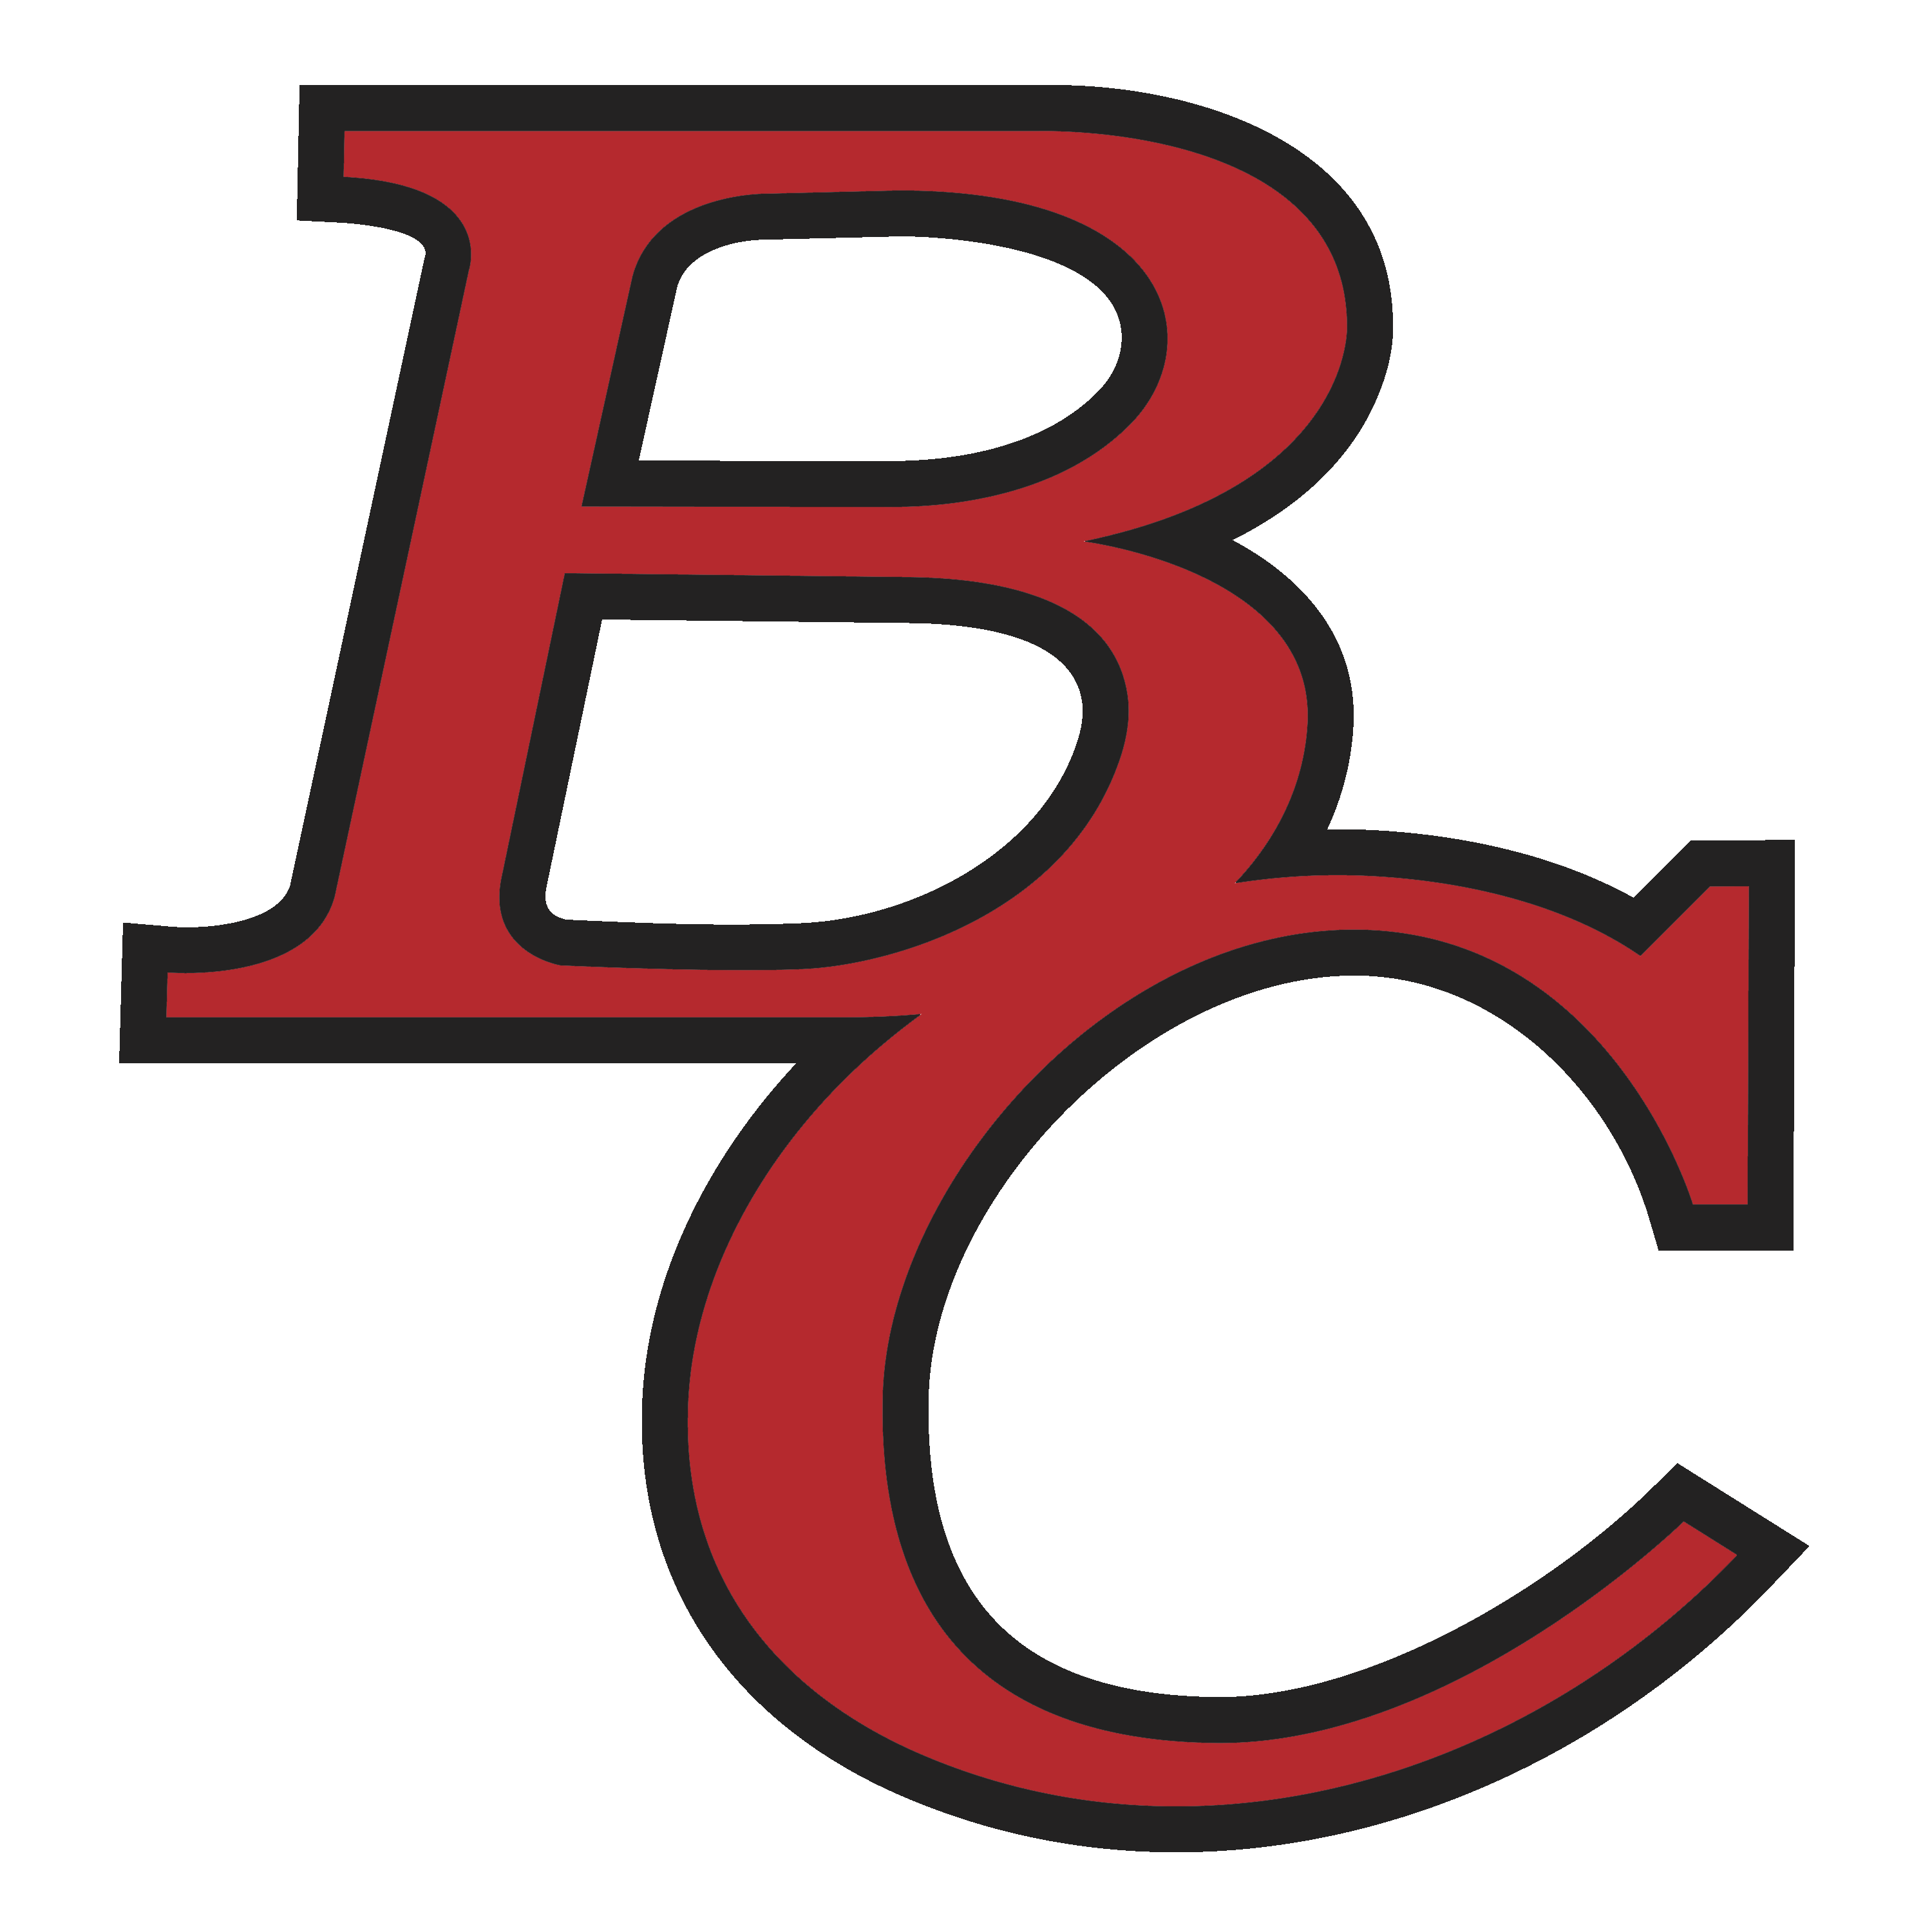 Stacked BC letters in red with black outline.